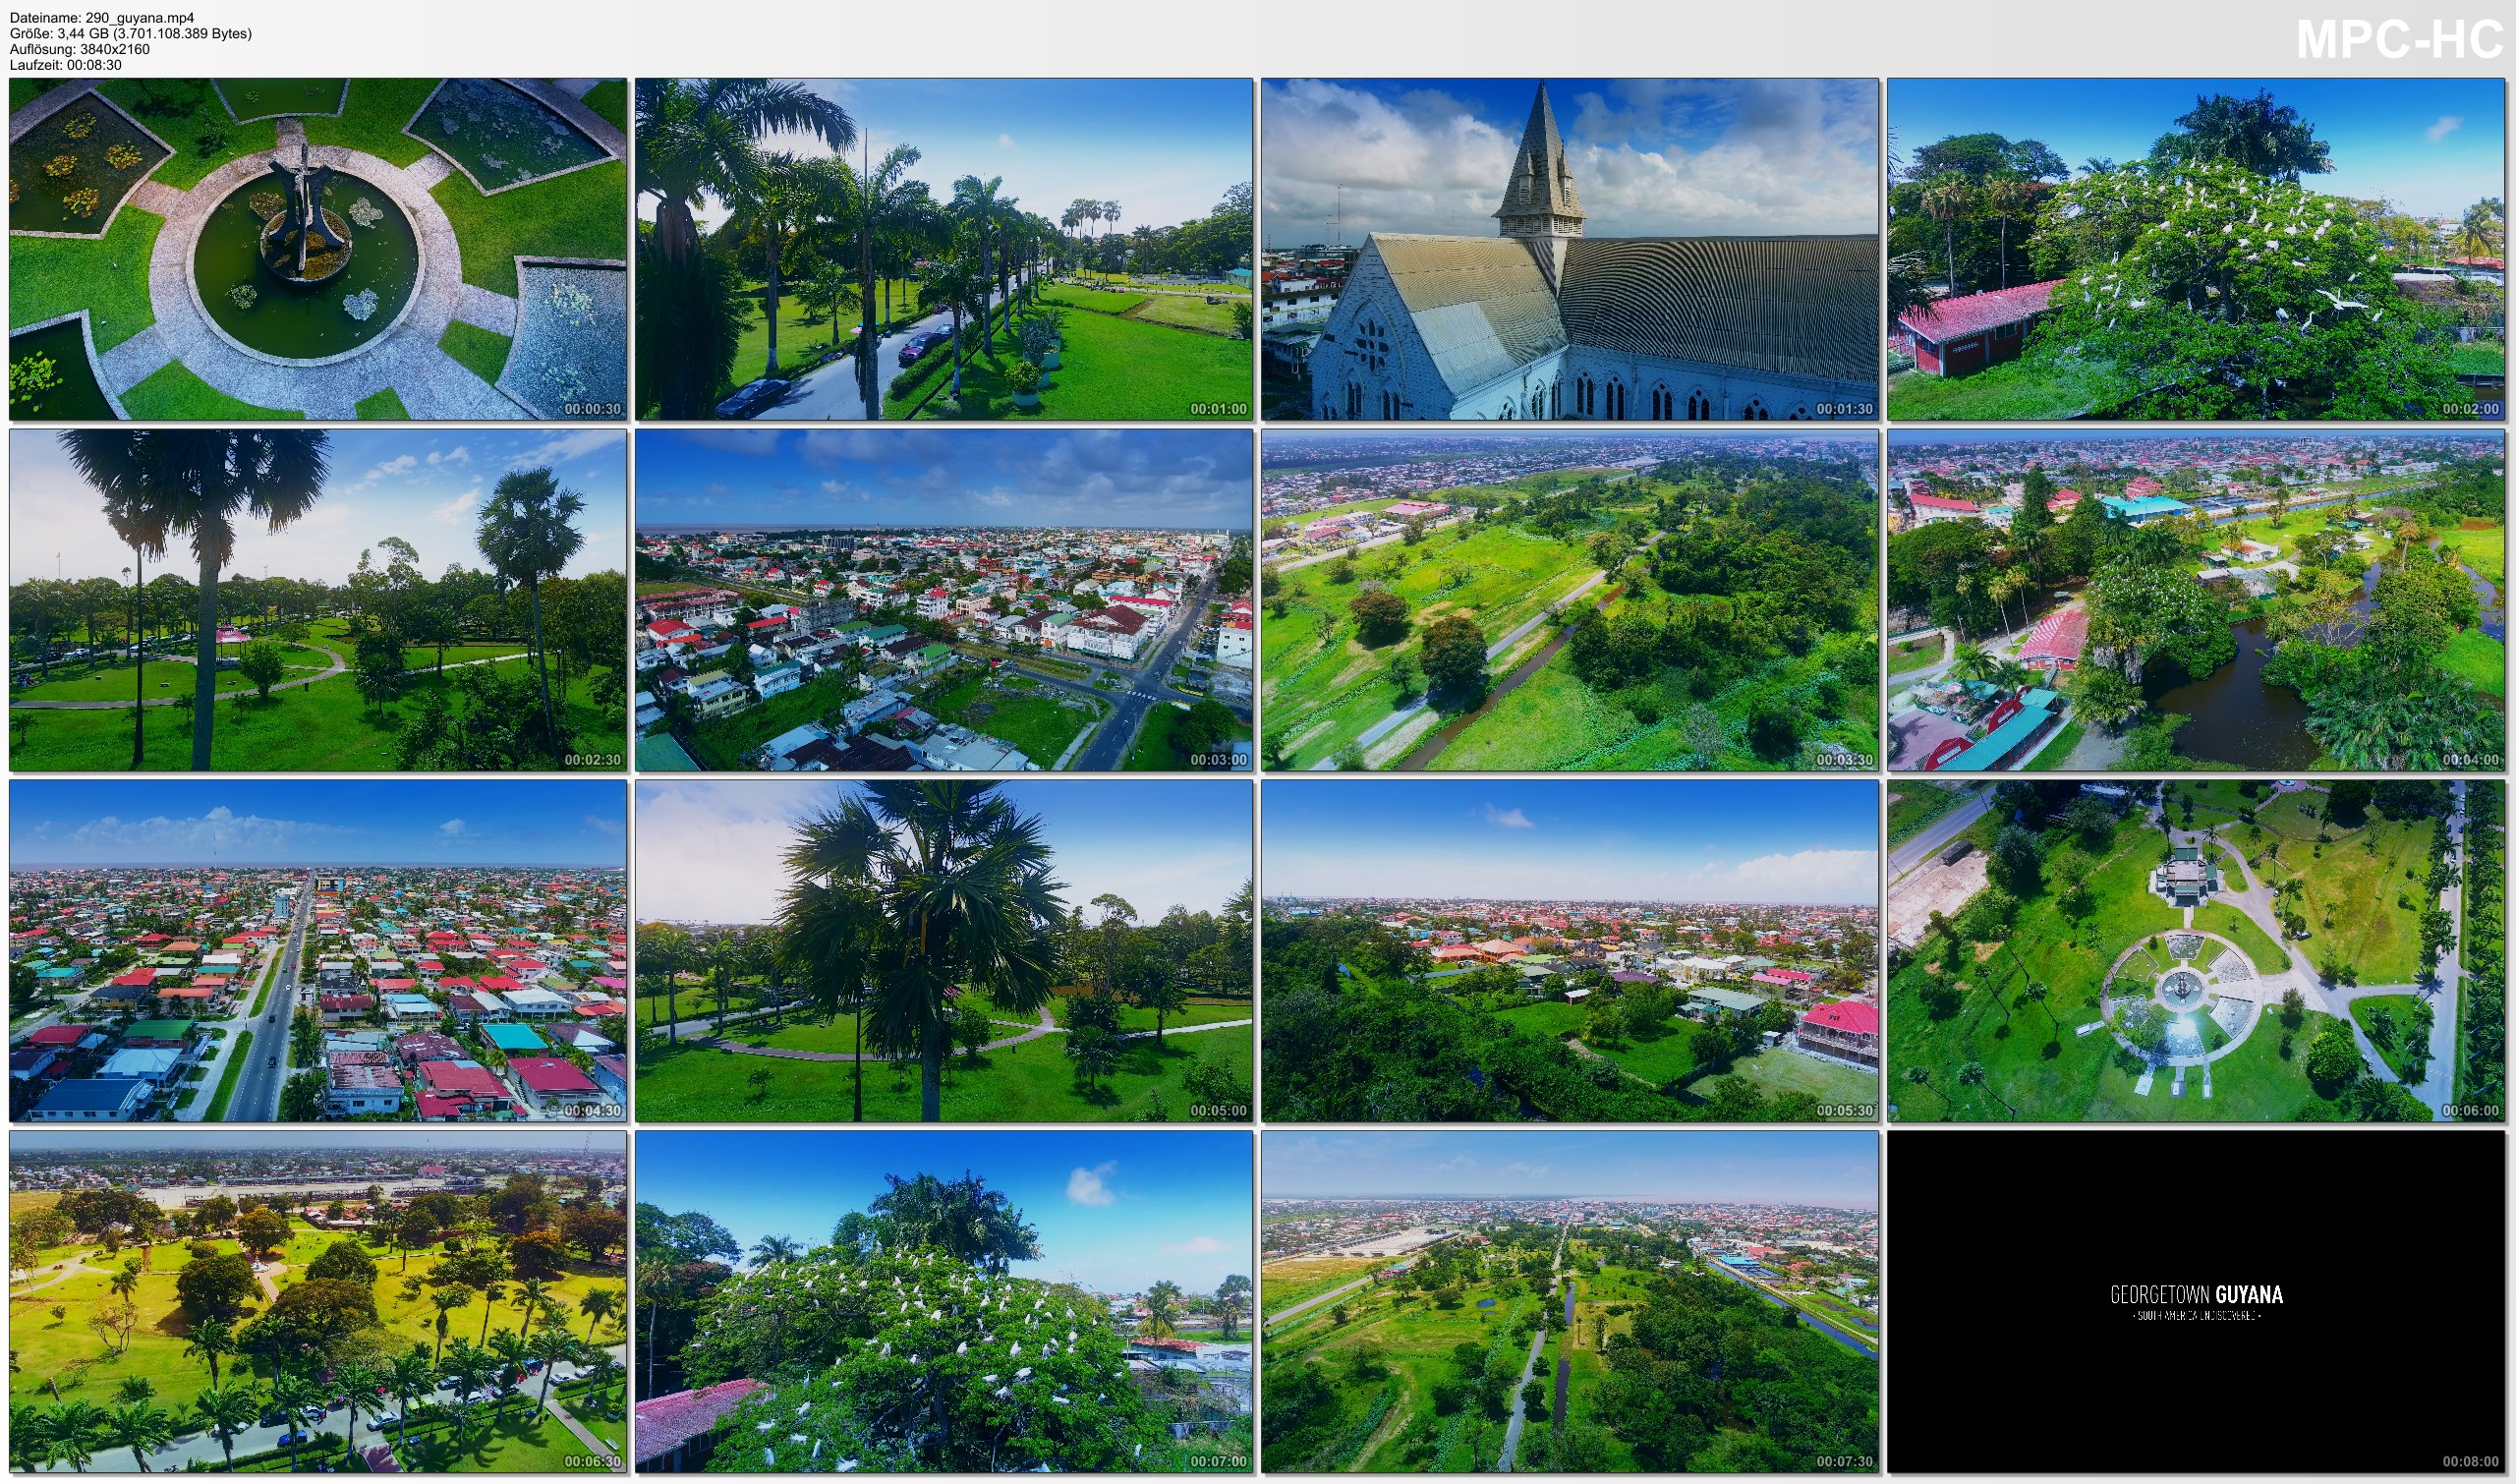 Drone Pictures from Video 【4K】Drone Footage | GUYANA - South America Undiscovered 2019 ..:: Cinematic Aerial Film | Georgetown